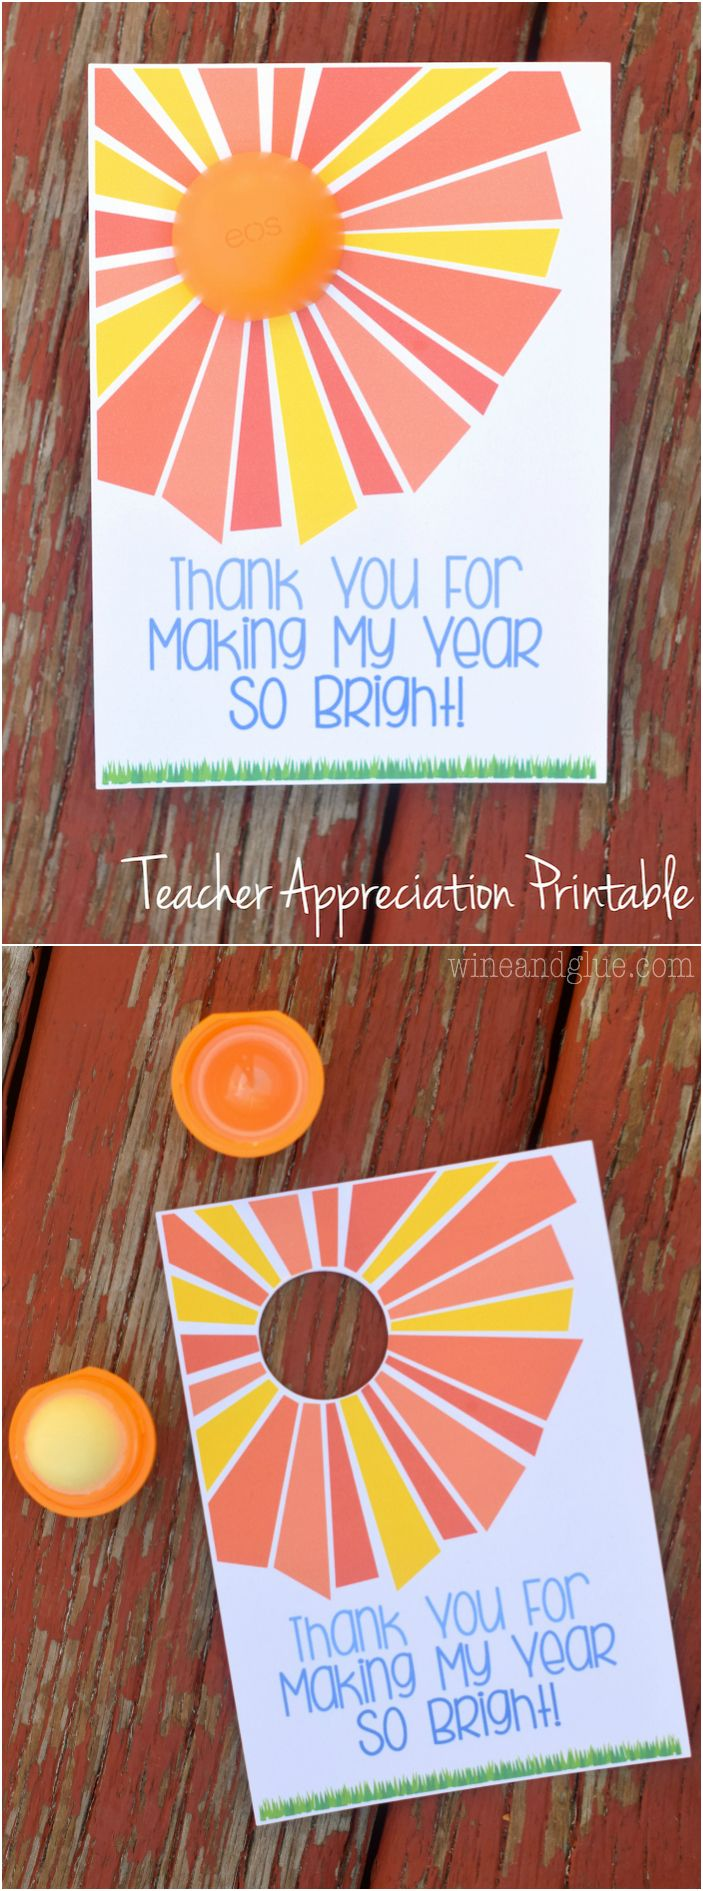 EOS Lip Balm Teacher Appreciation Printable | www.wineandglue.com | An easy and cute teacher appreciation note!